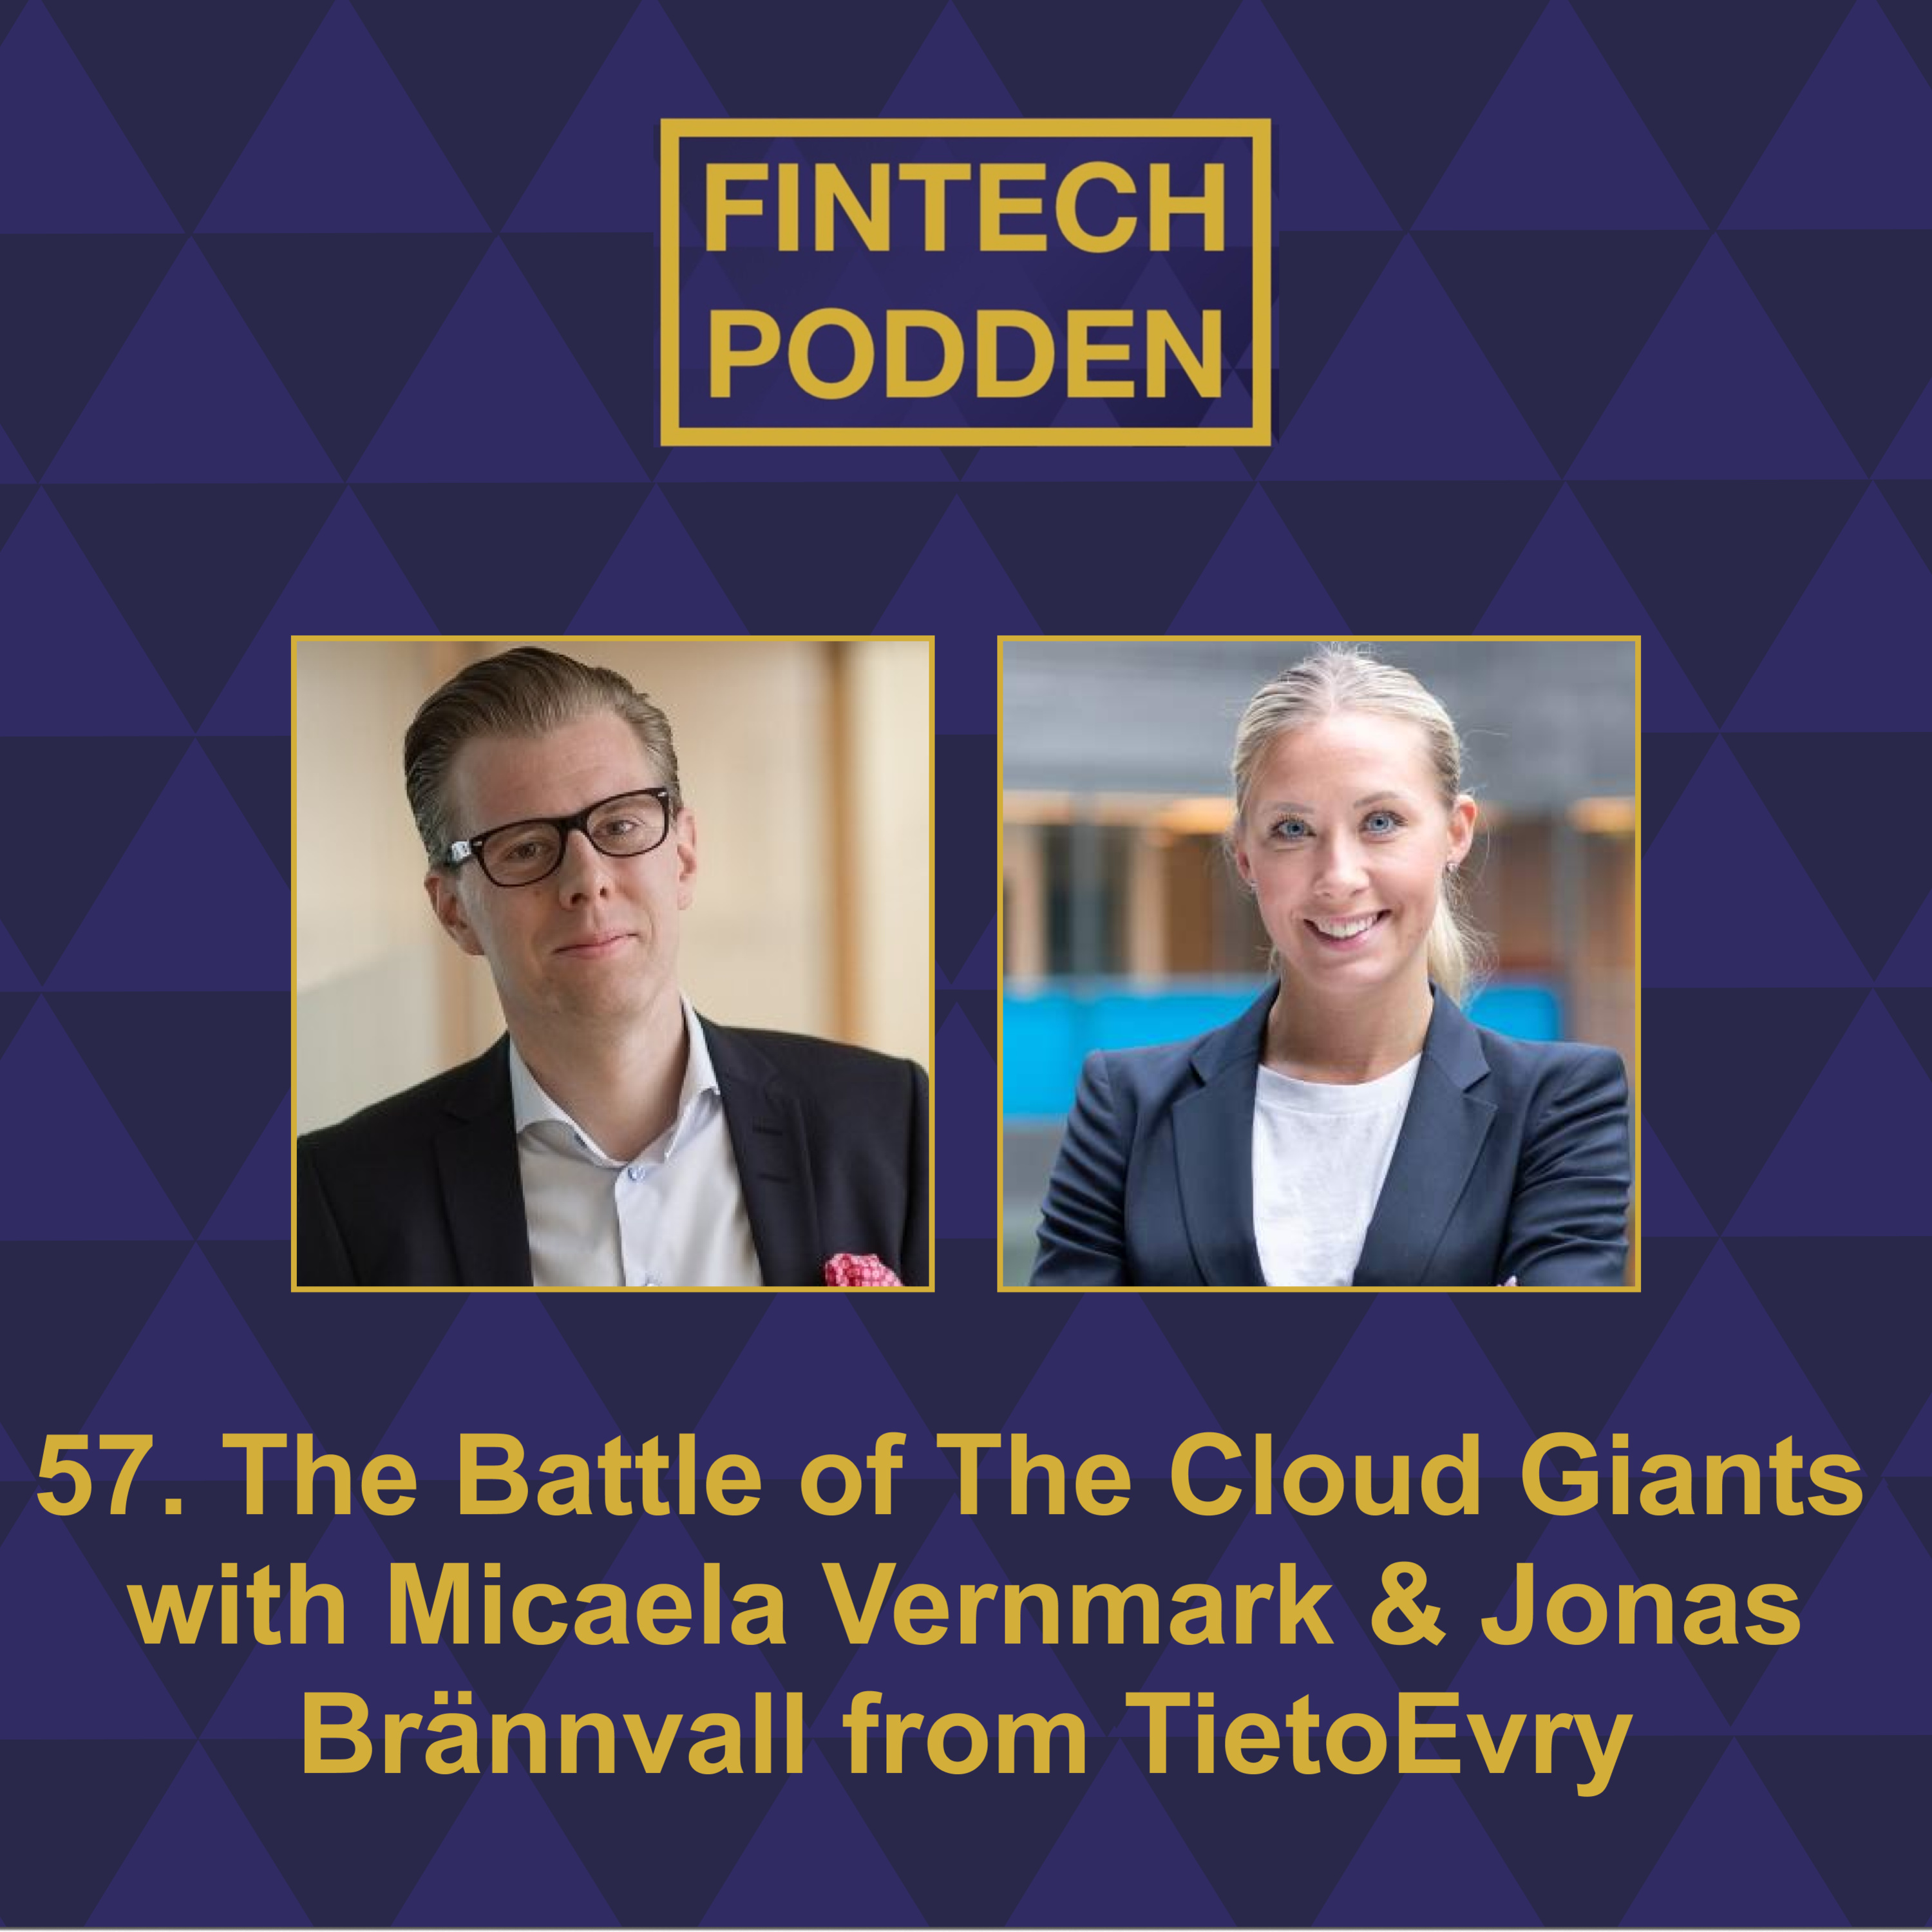 58. The battle of the cloud giants with Micaela Vernmark & Jonas Bränvall from TietoEVRY